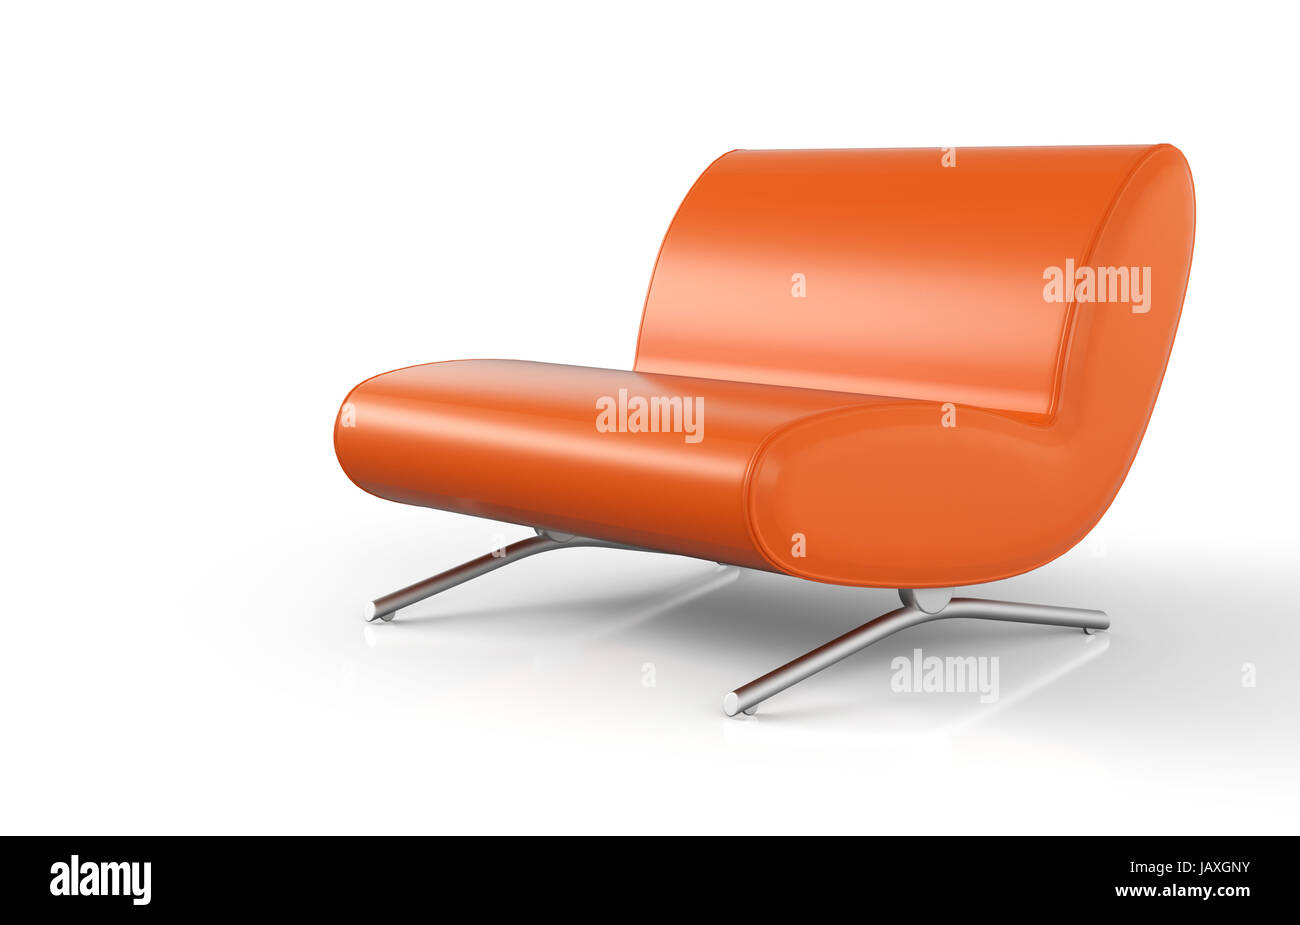 Desinger Sessel Ergonomischer Designer Sessel Orange Stock Photo 144413415 Alamy